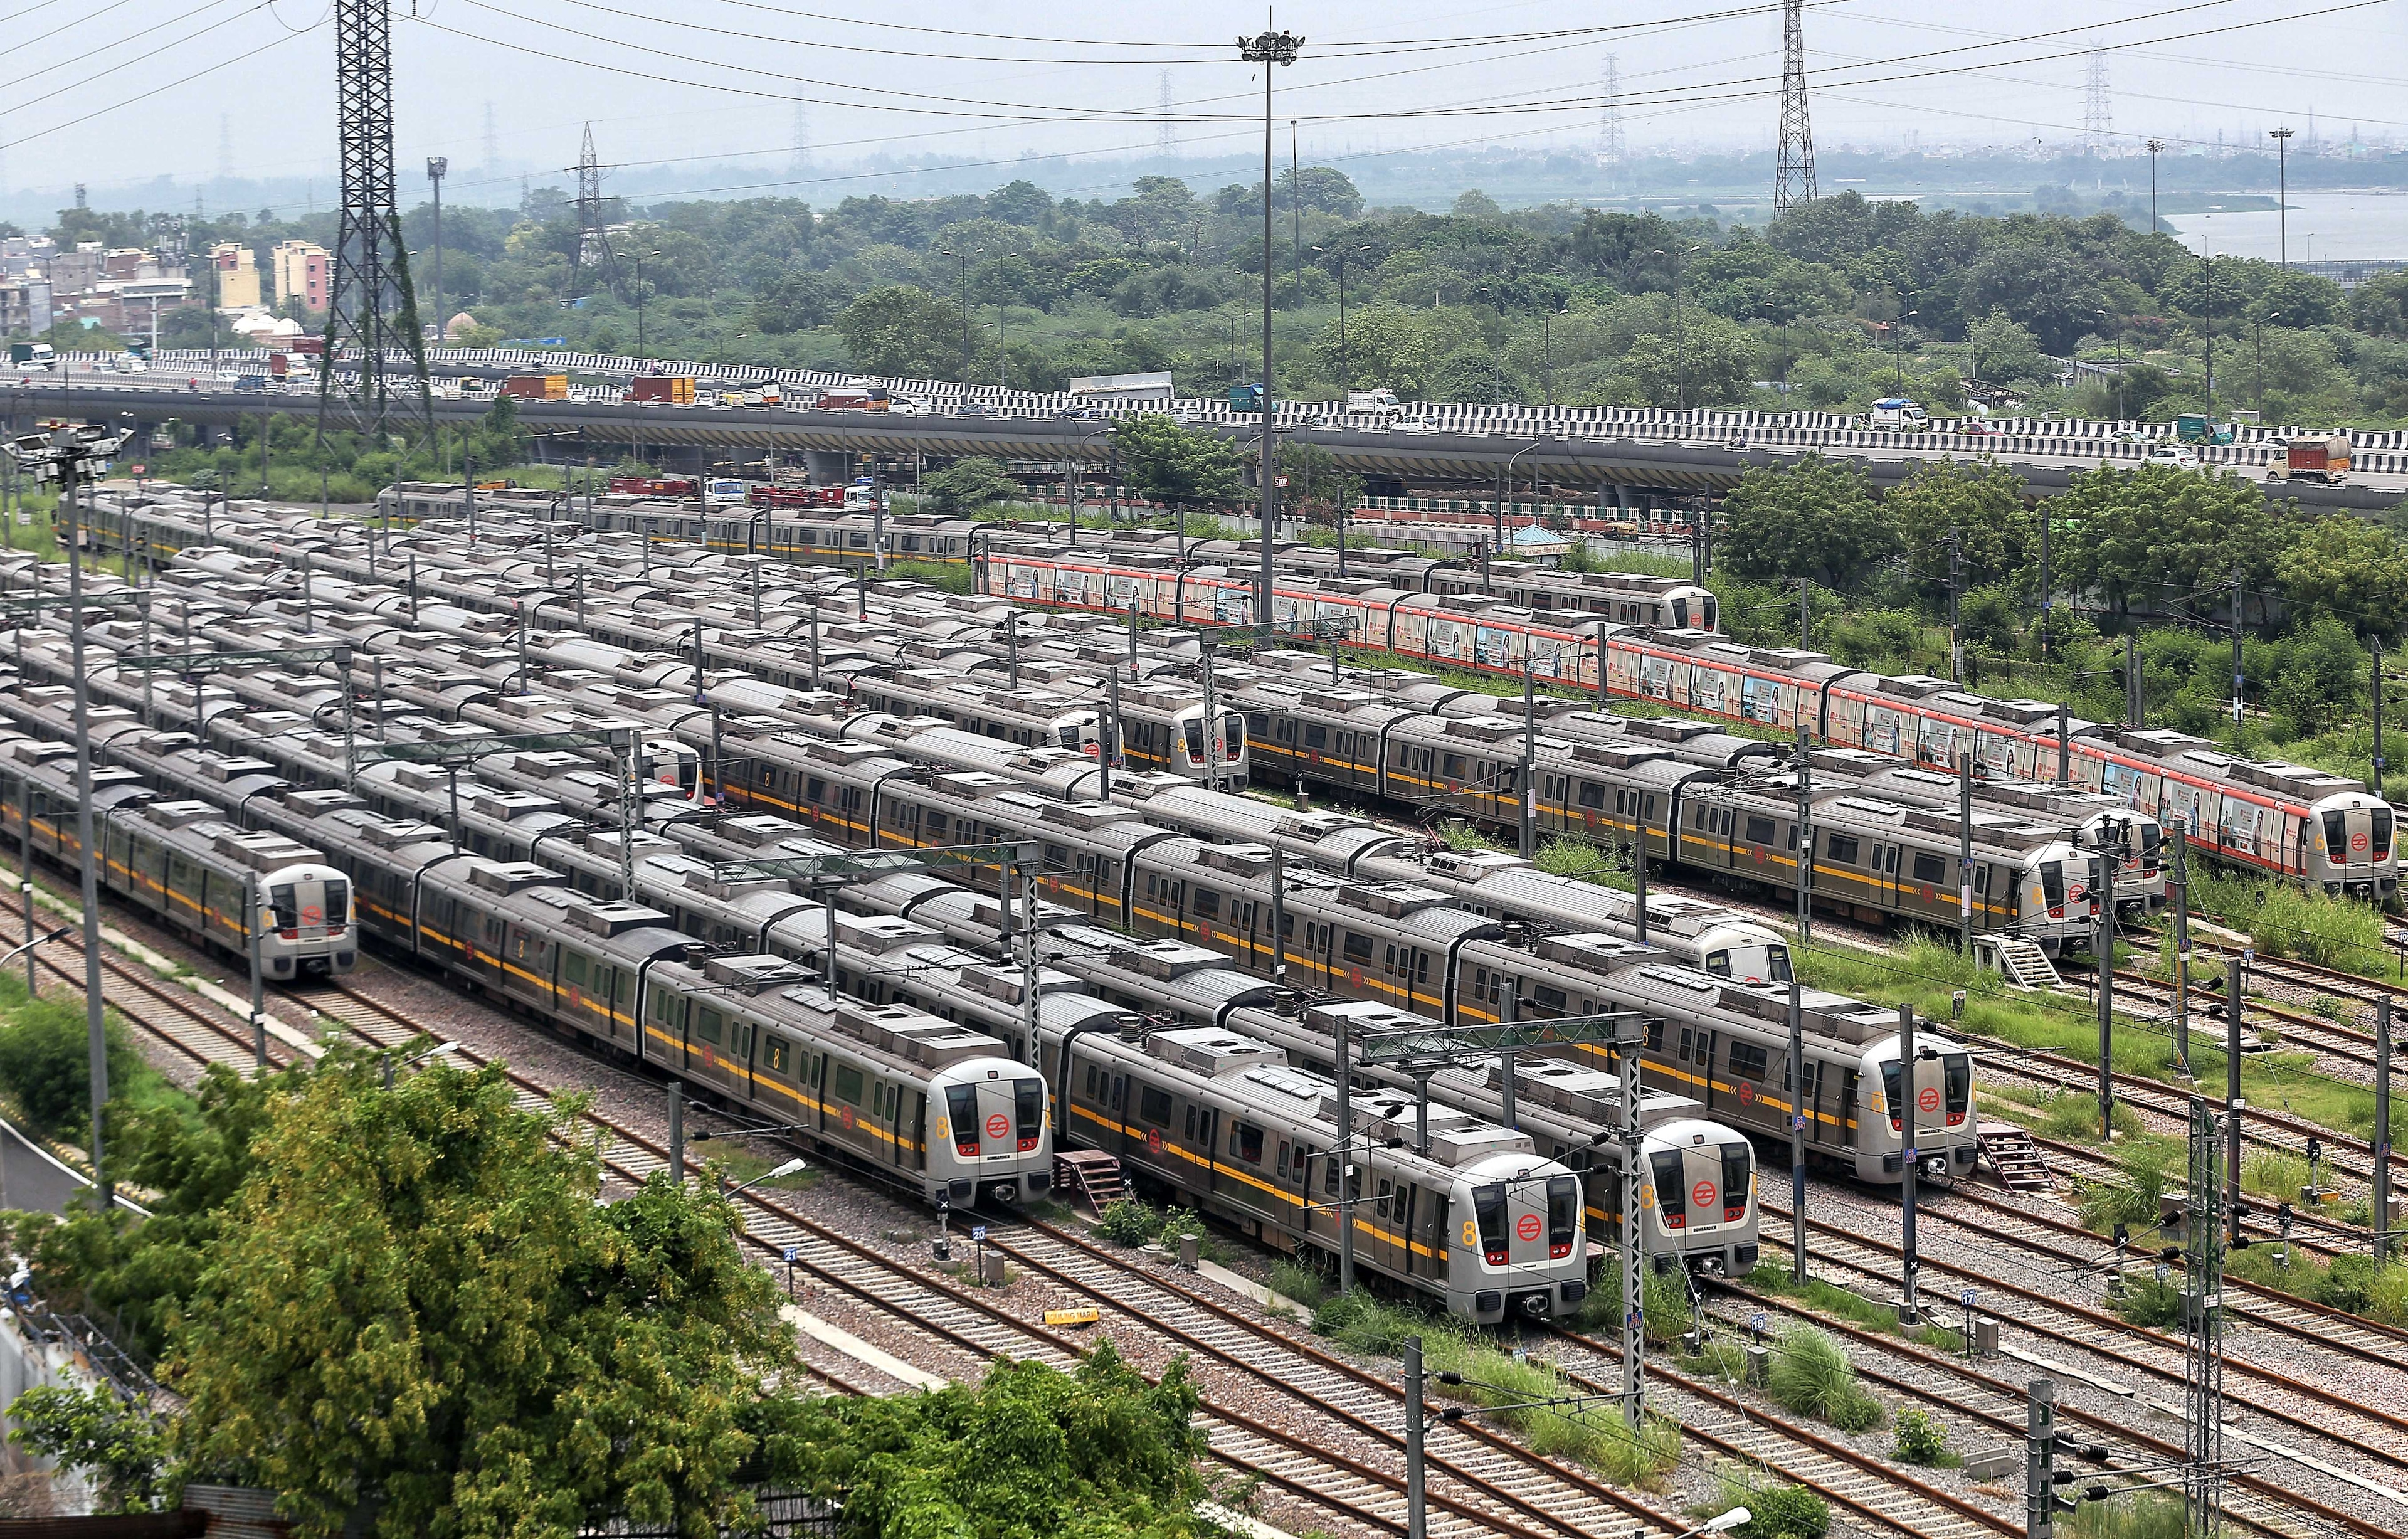 Metro trains parked at a yard as Metro services are suspended following the outbreak of Covid-19 pandemic in New Delhi on Thursday. Photo: ANI